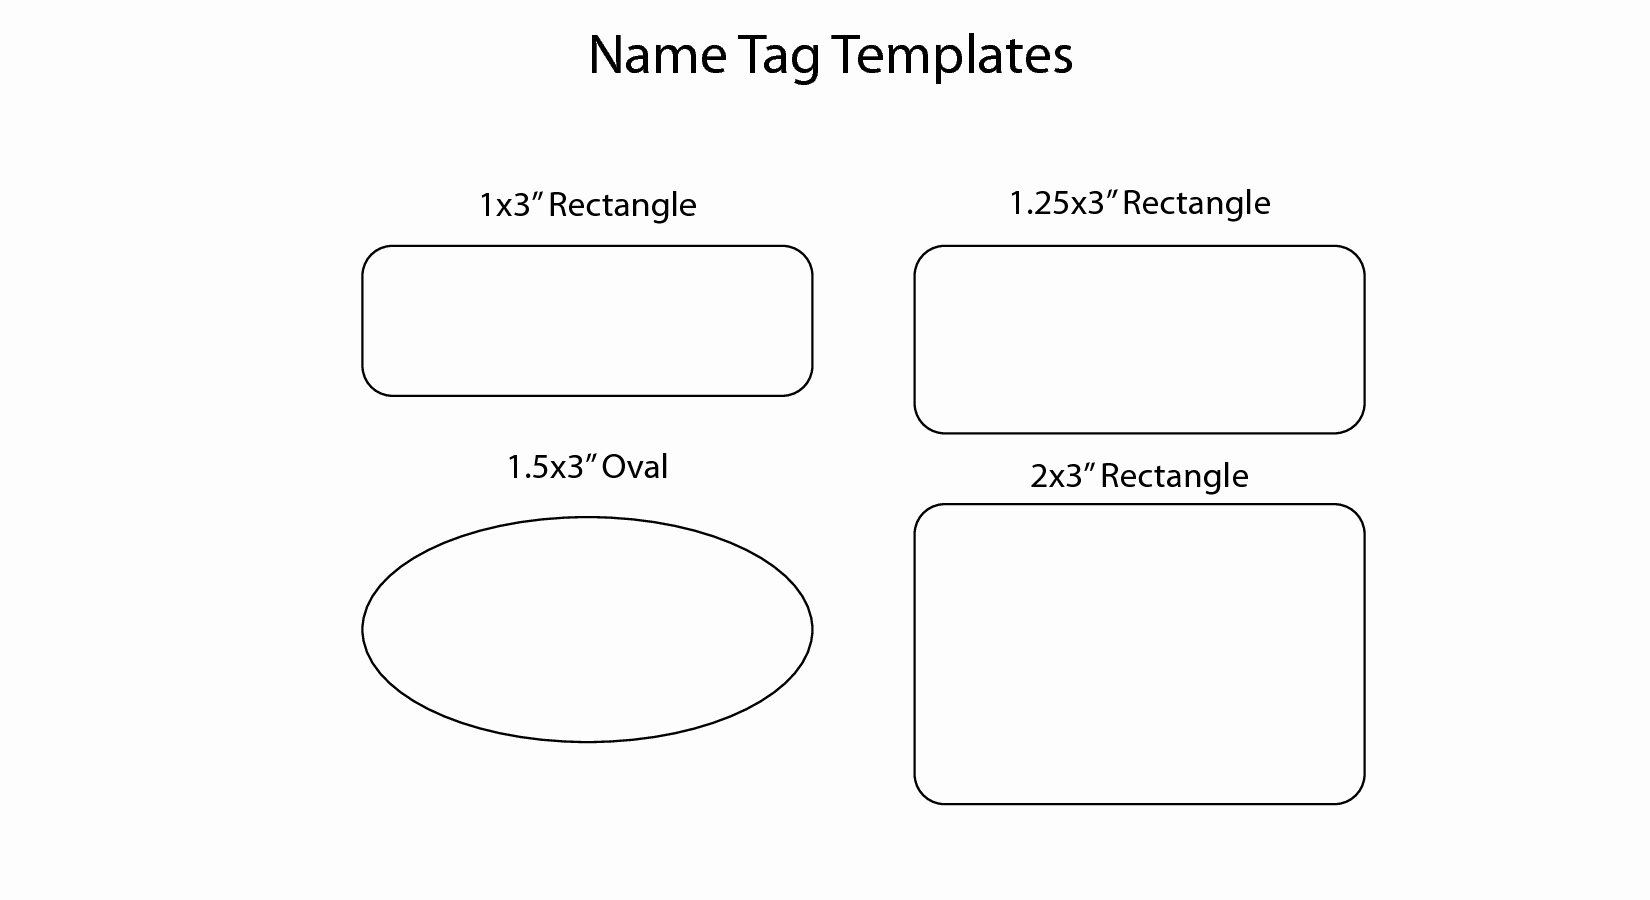 Free Template for Name Tags Inspirational 14 Name Badge Templates Christmas Name Badge